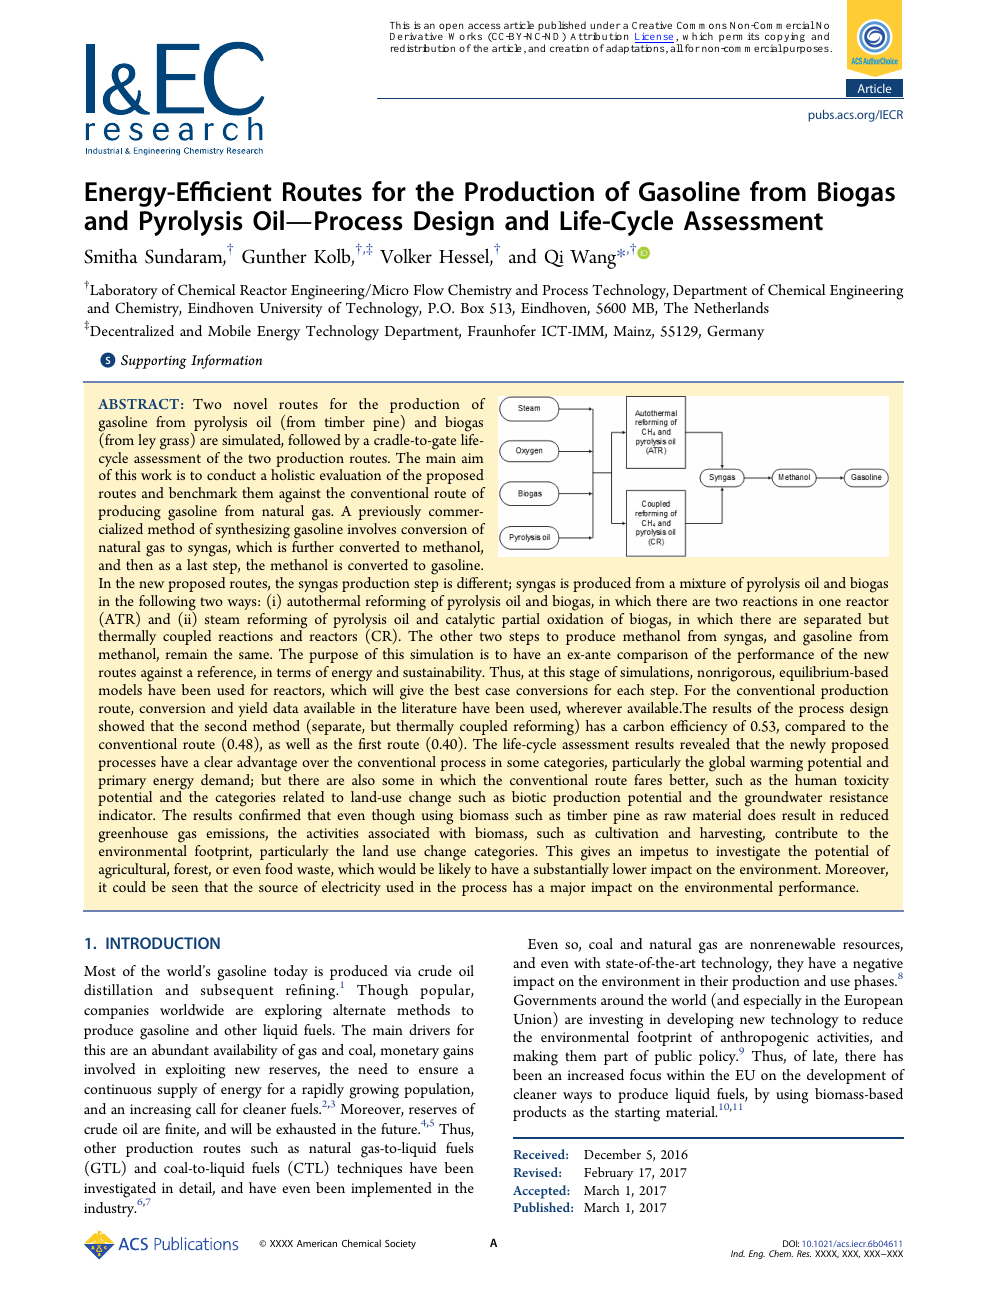 Energy-Efficient Routes for the Production of Gasoline from Biogas